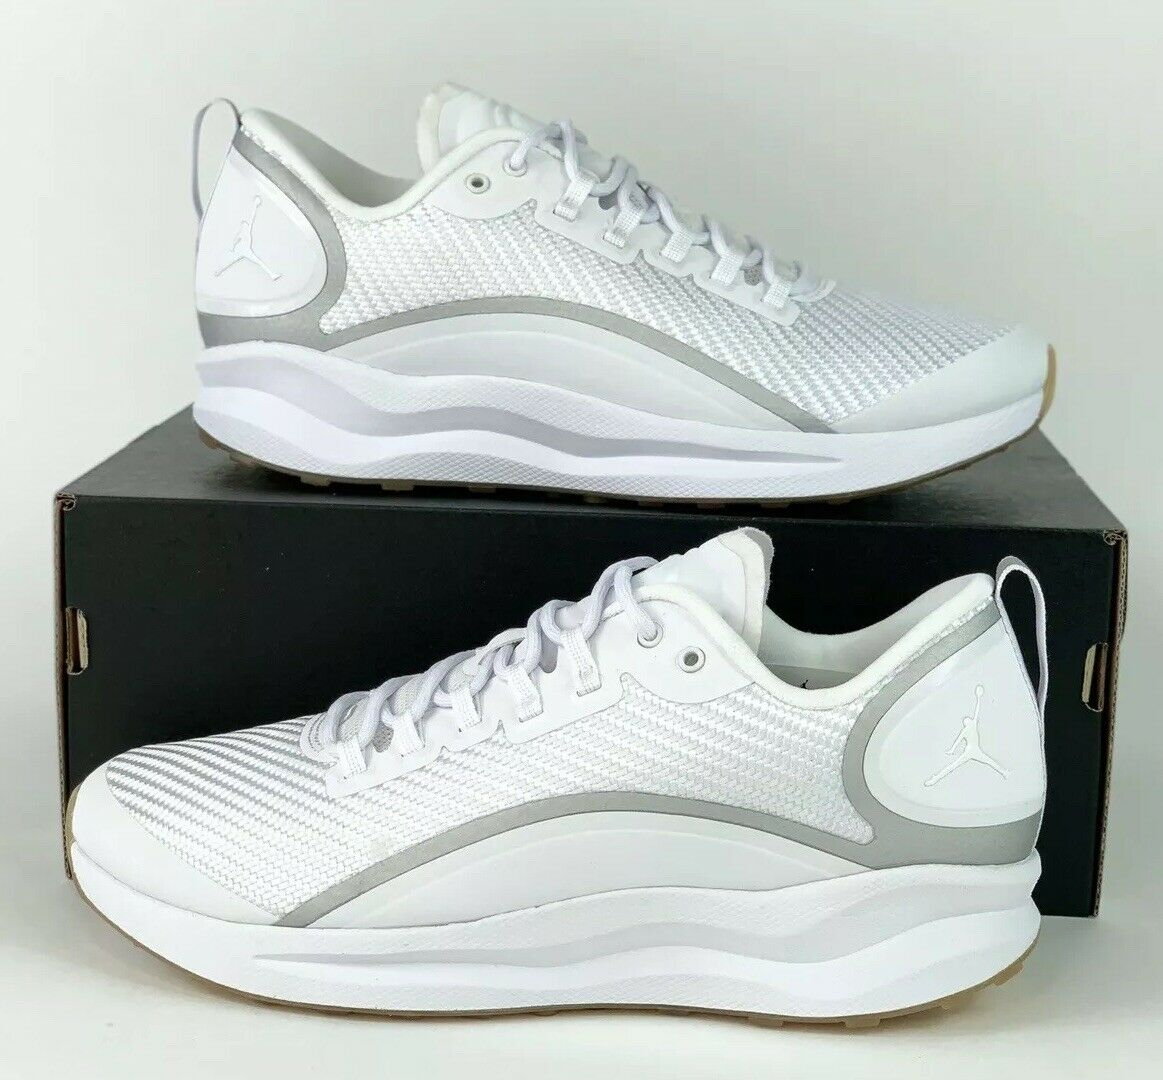 Nike Air Jordan Zoom Tenacity Running shoes White Gum AH8111-115 Sz 8